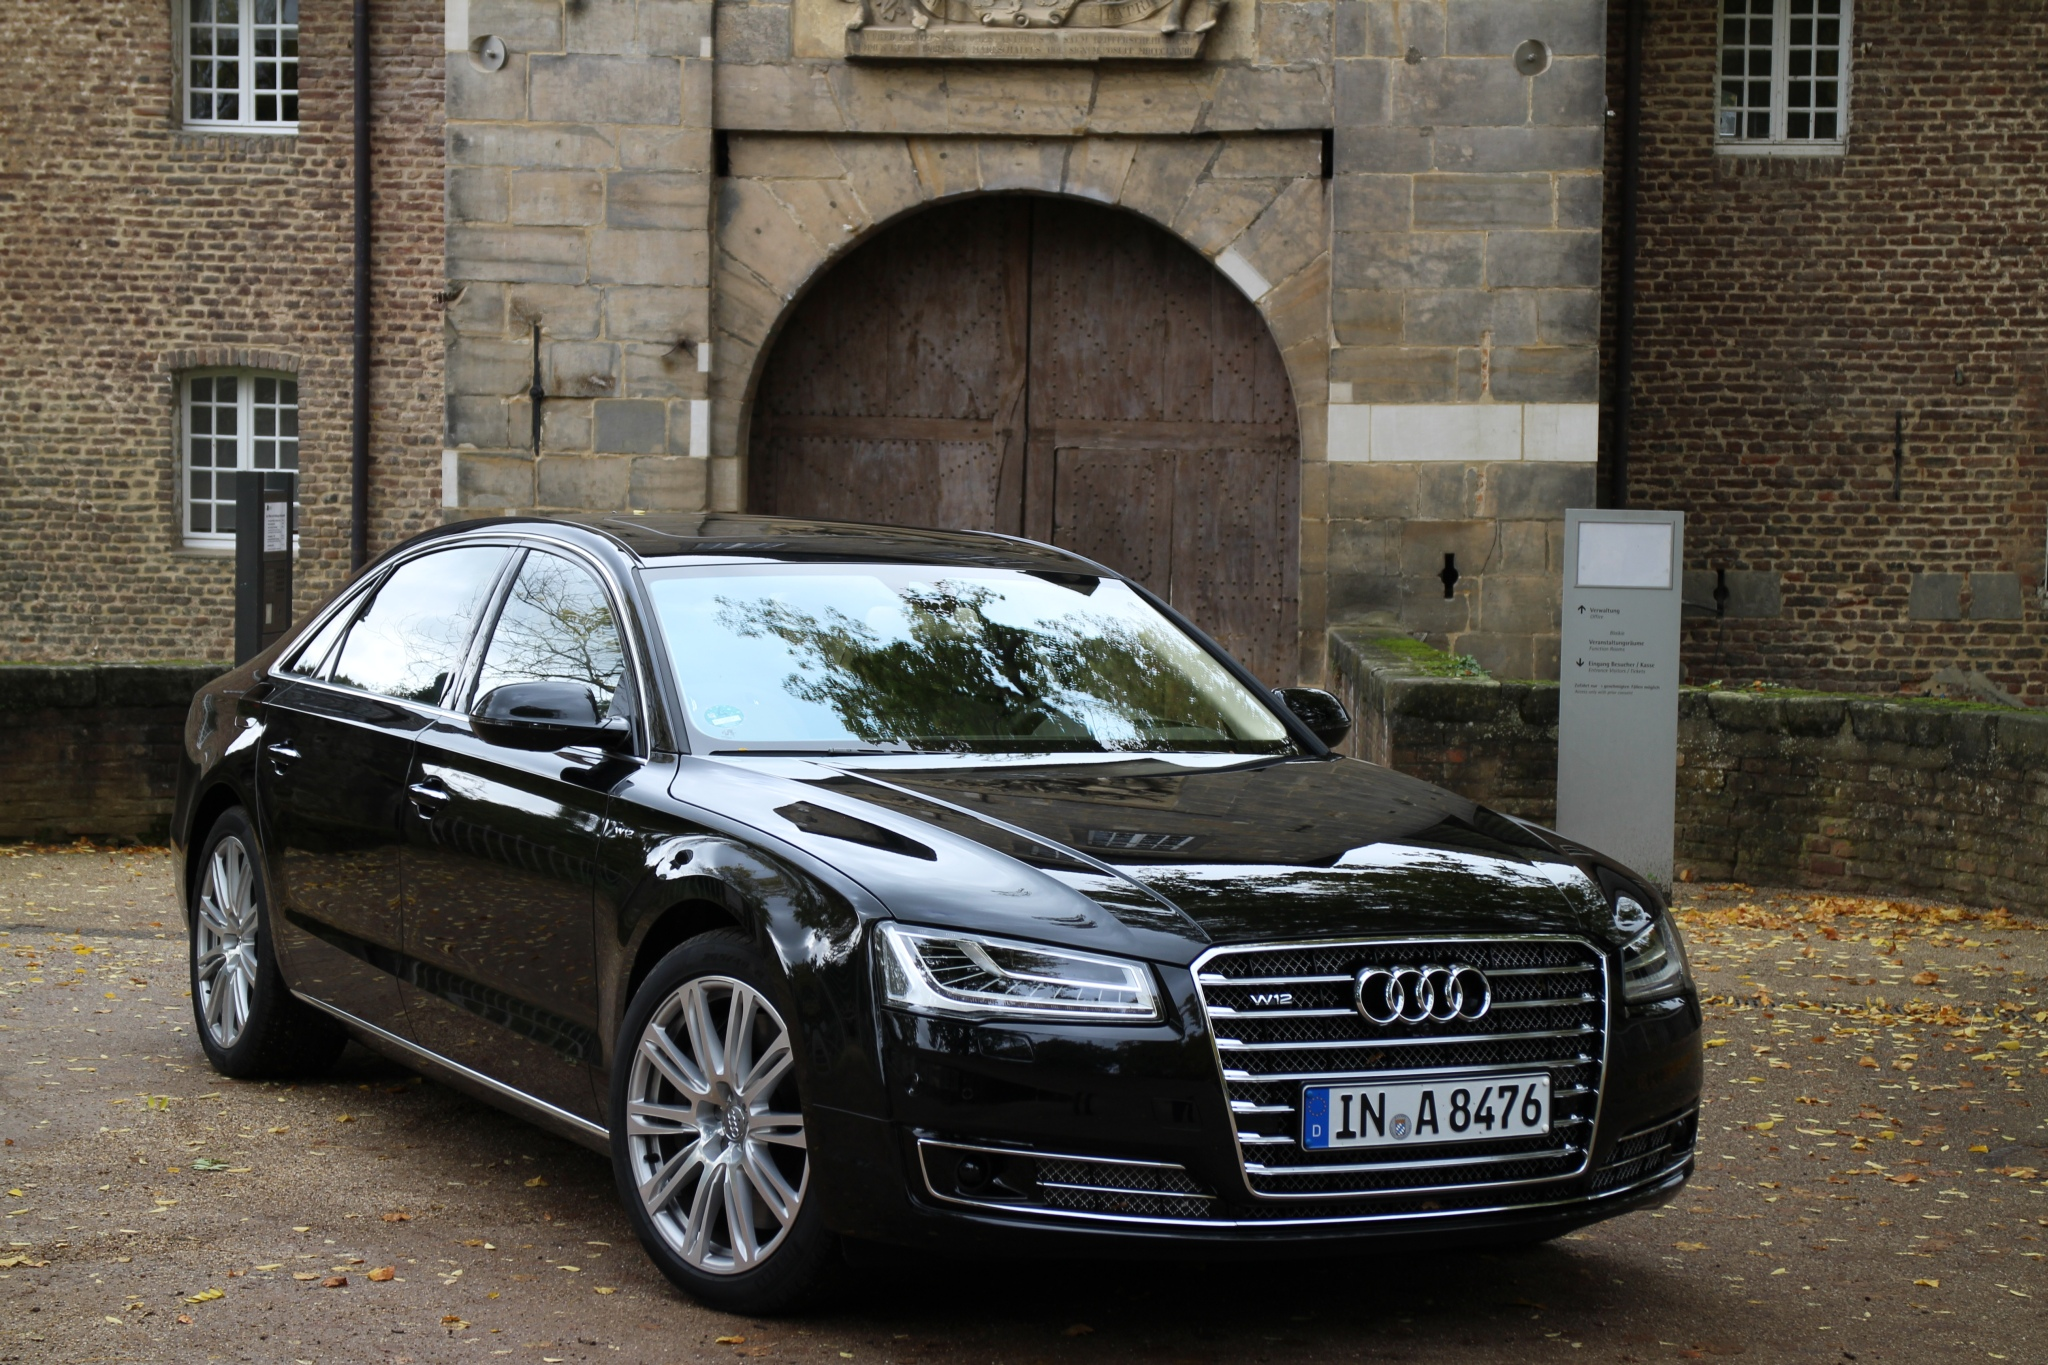 audi a8 iii (d4) 2010 pictures #7